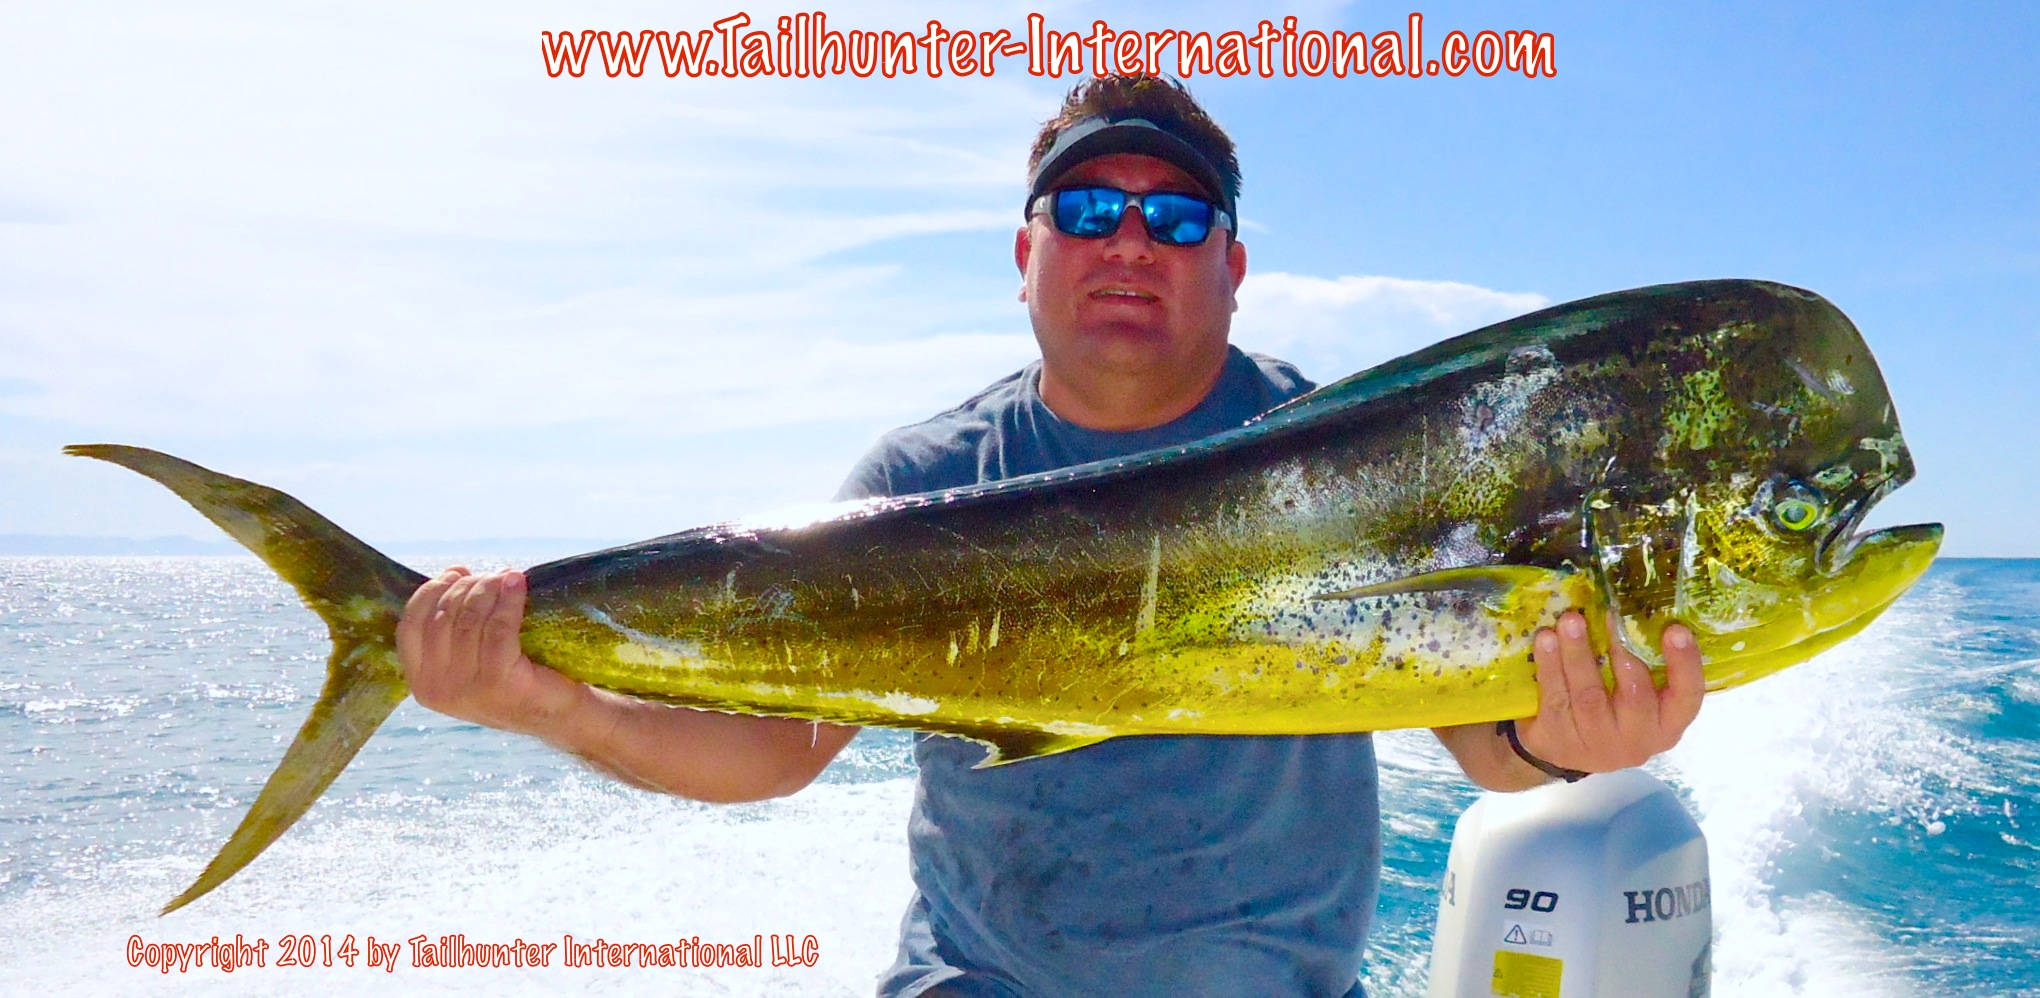 July 20th tailhunter la paz las arenas reports bloodydecks for Oklahoma fishing report from anglers